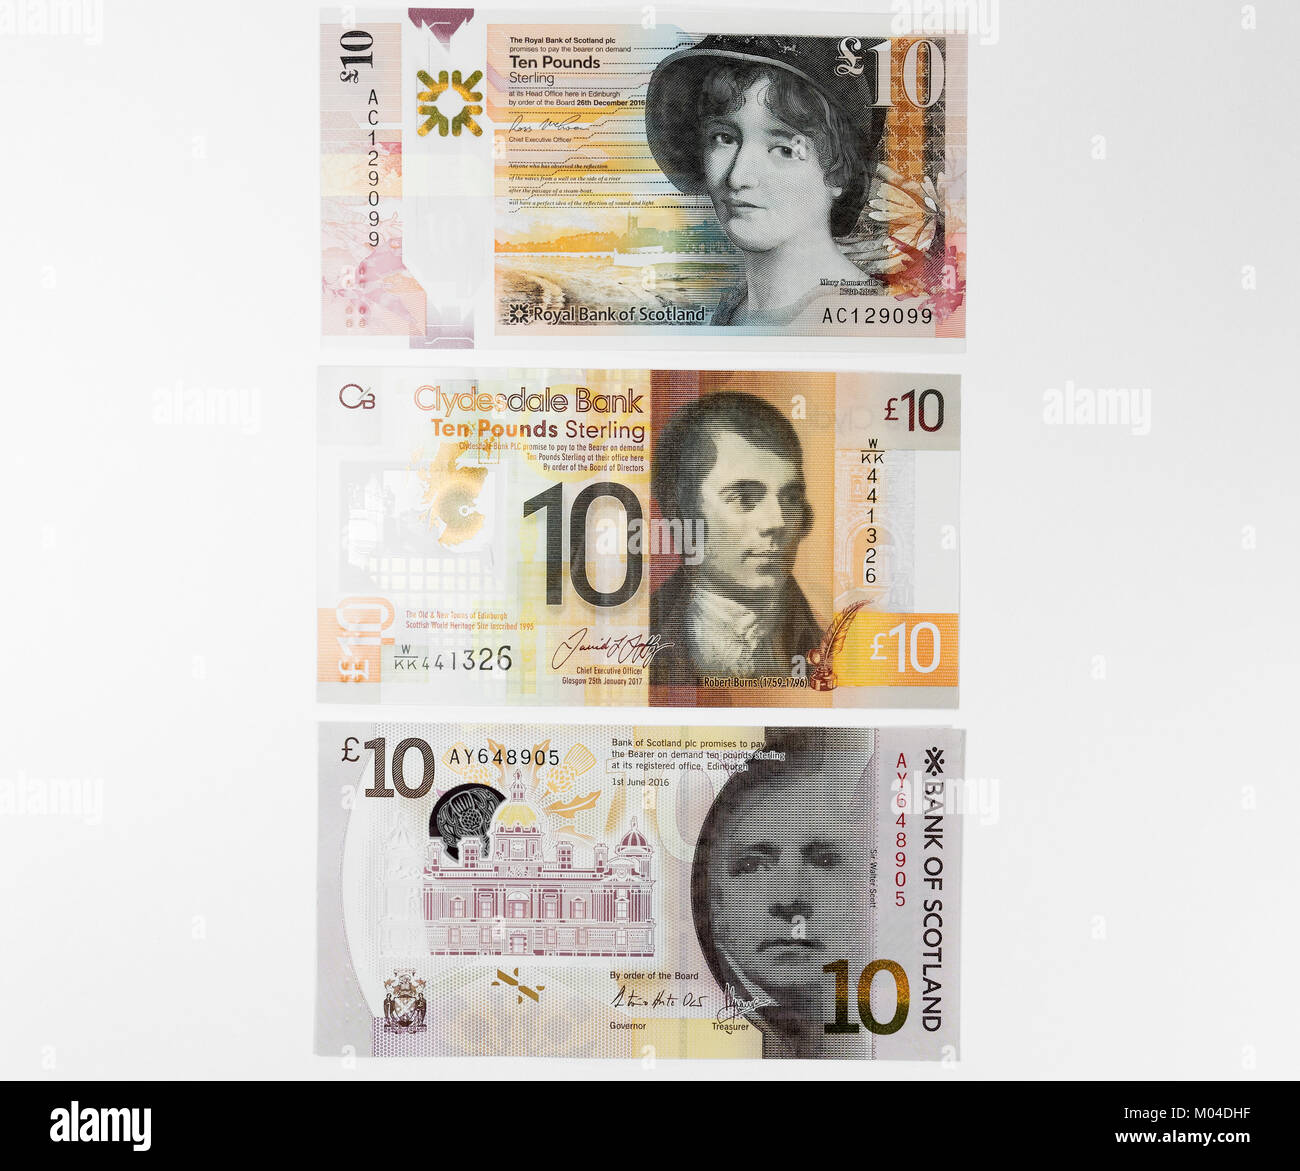 Scottish ten pound notes from Royal Bank of Scotland, Clydesdale Bank and Bank of Scotland featuring Mary Somerville,Robert - Stock Image